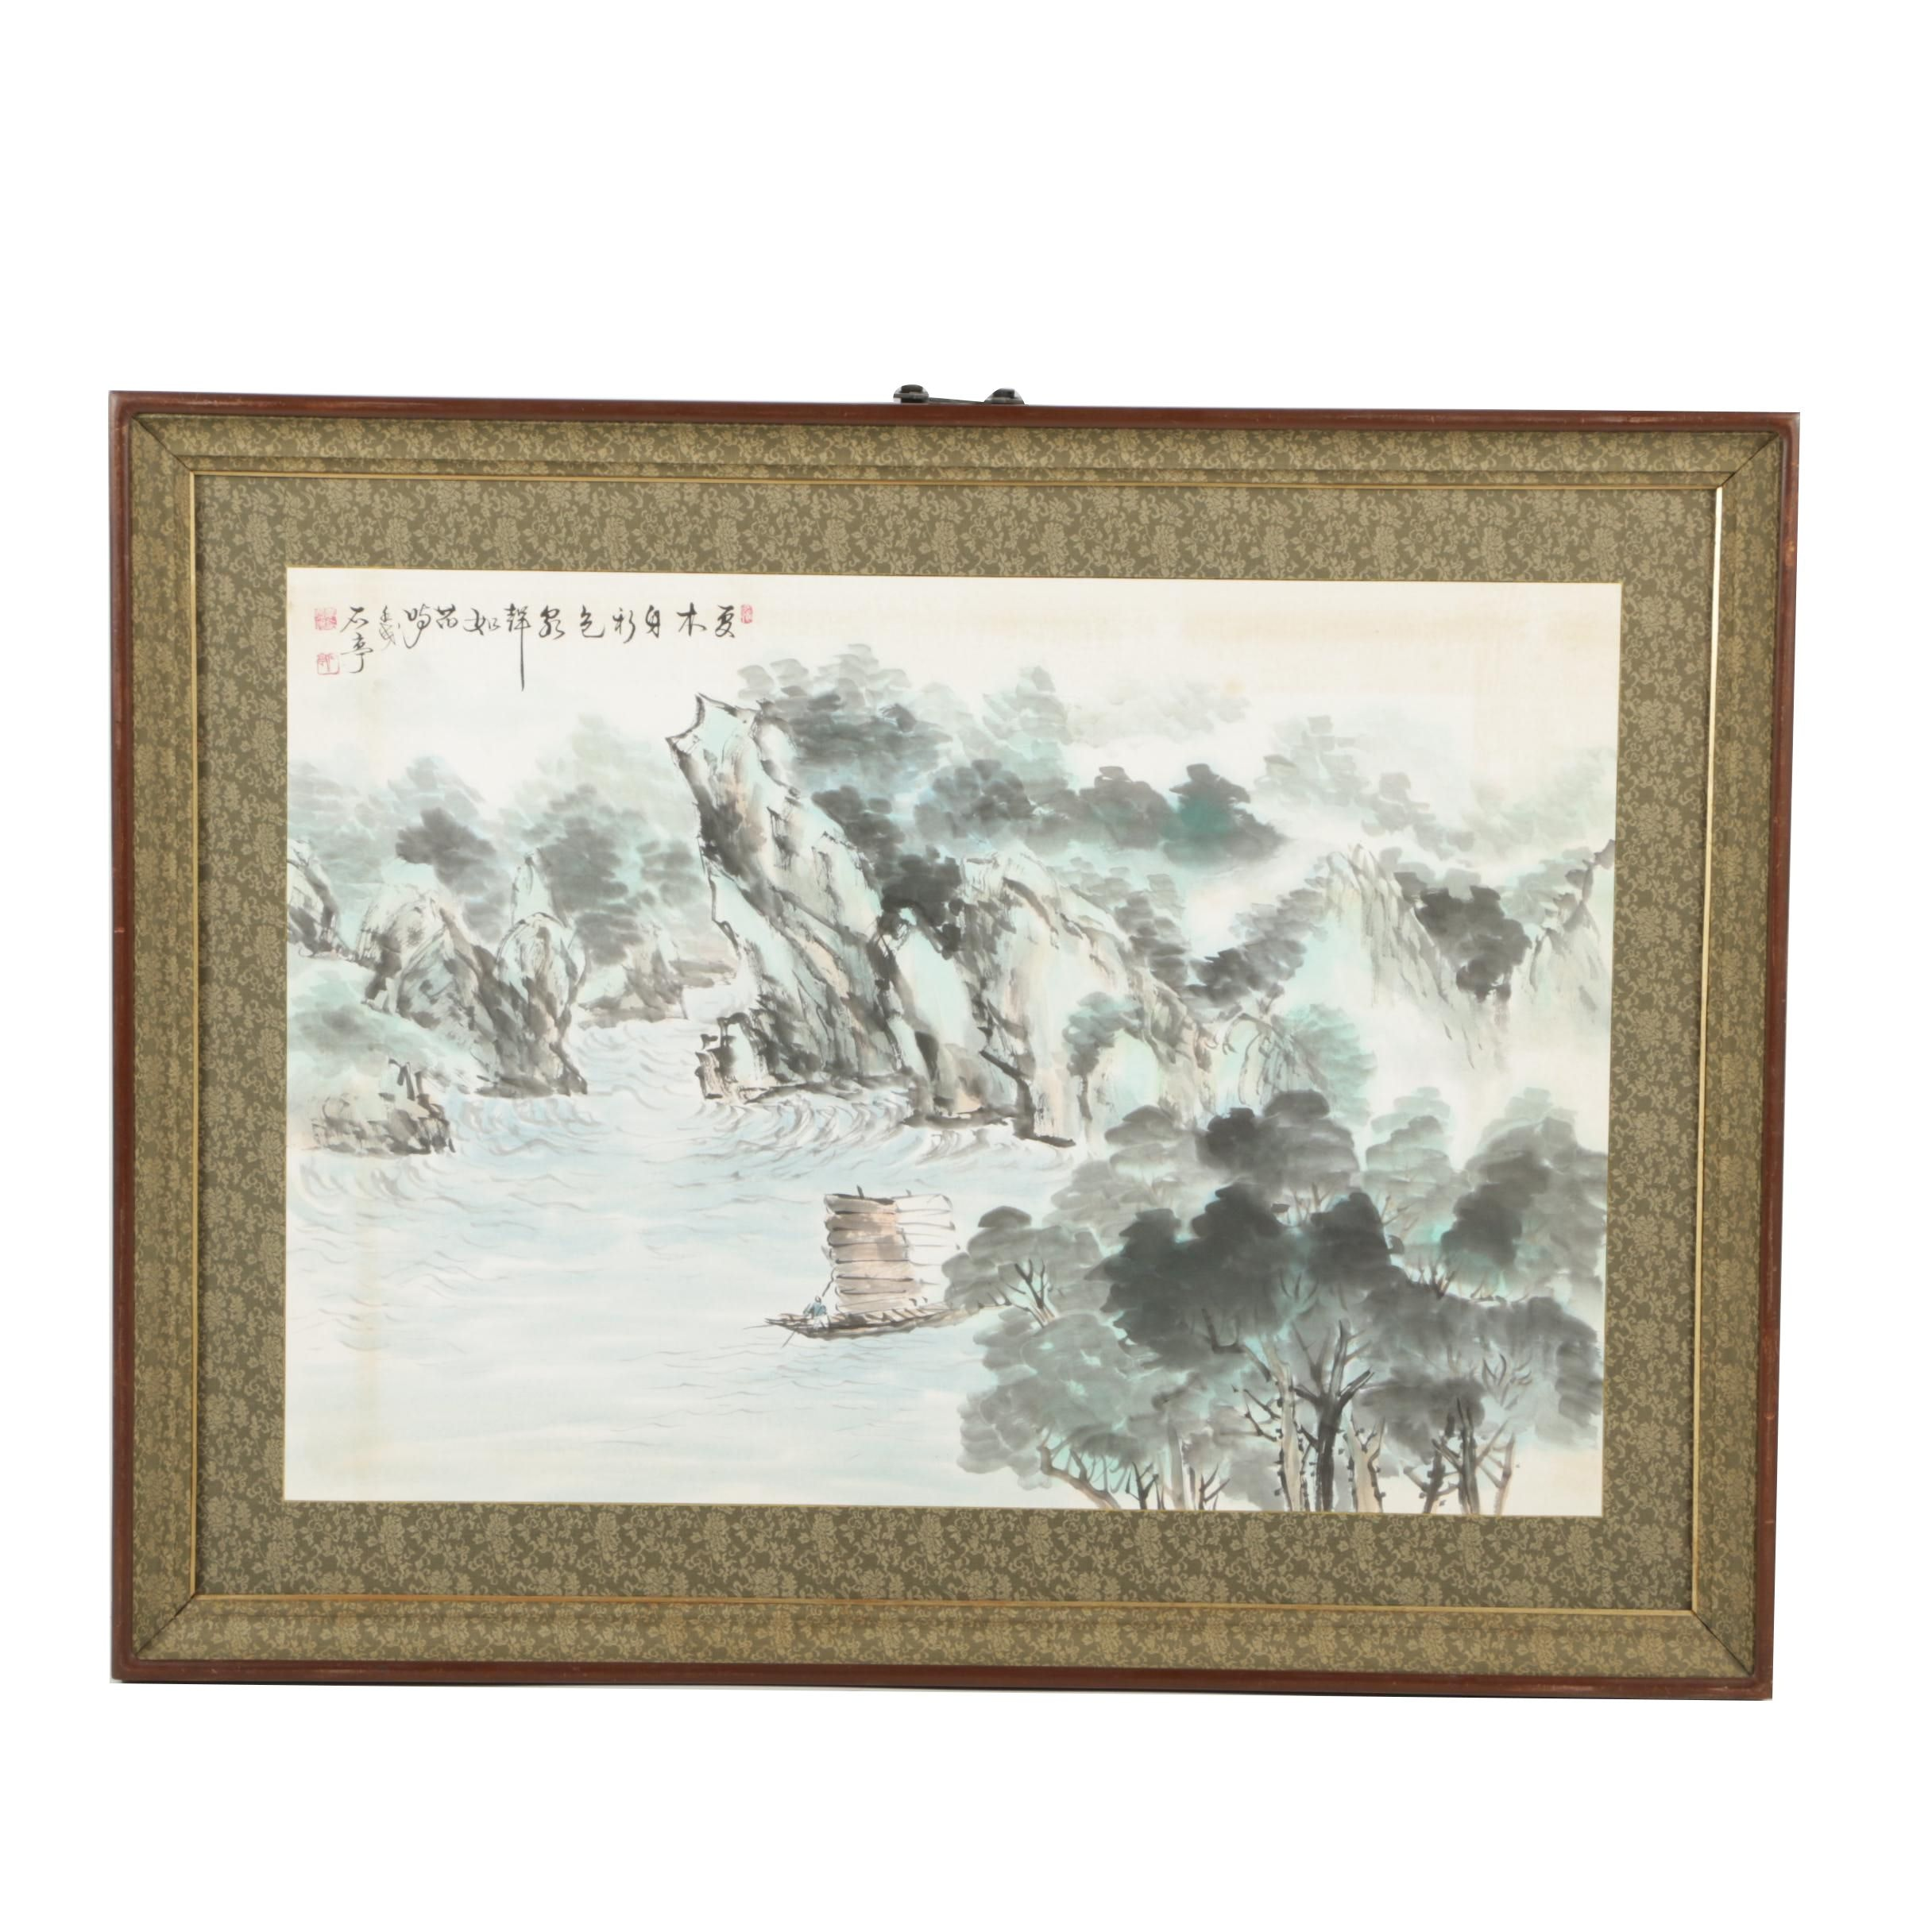 Chinese Watercolor and Ink Painting on Paper of a Landscape